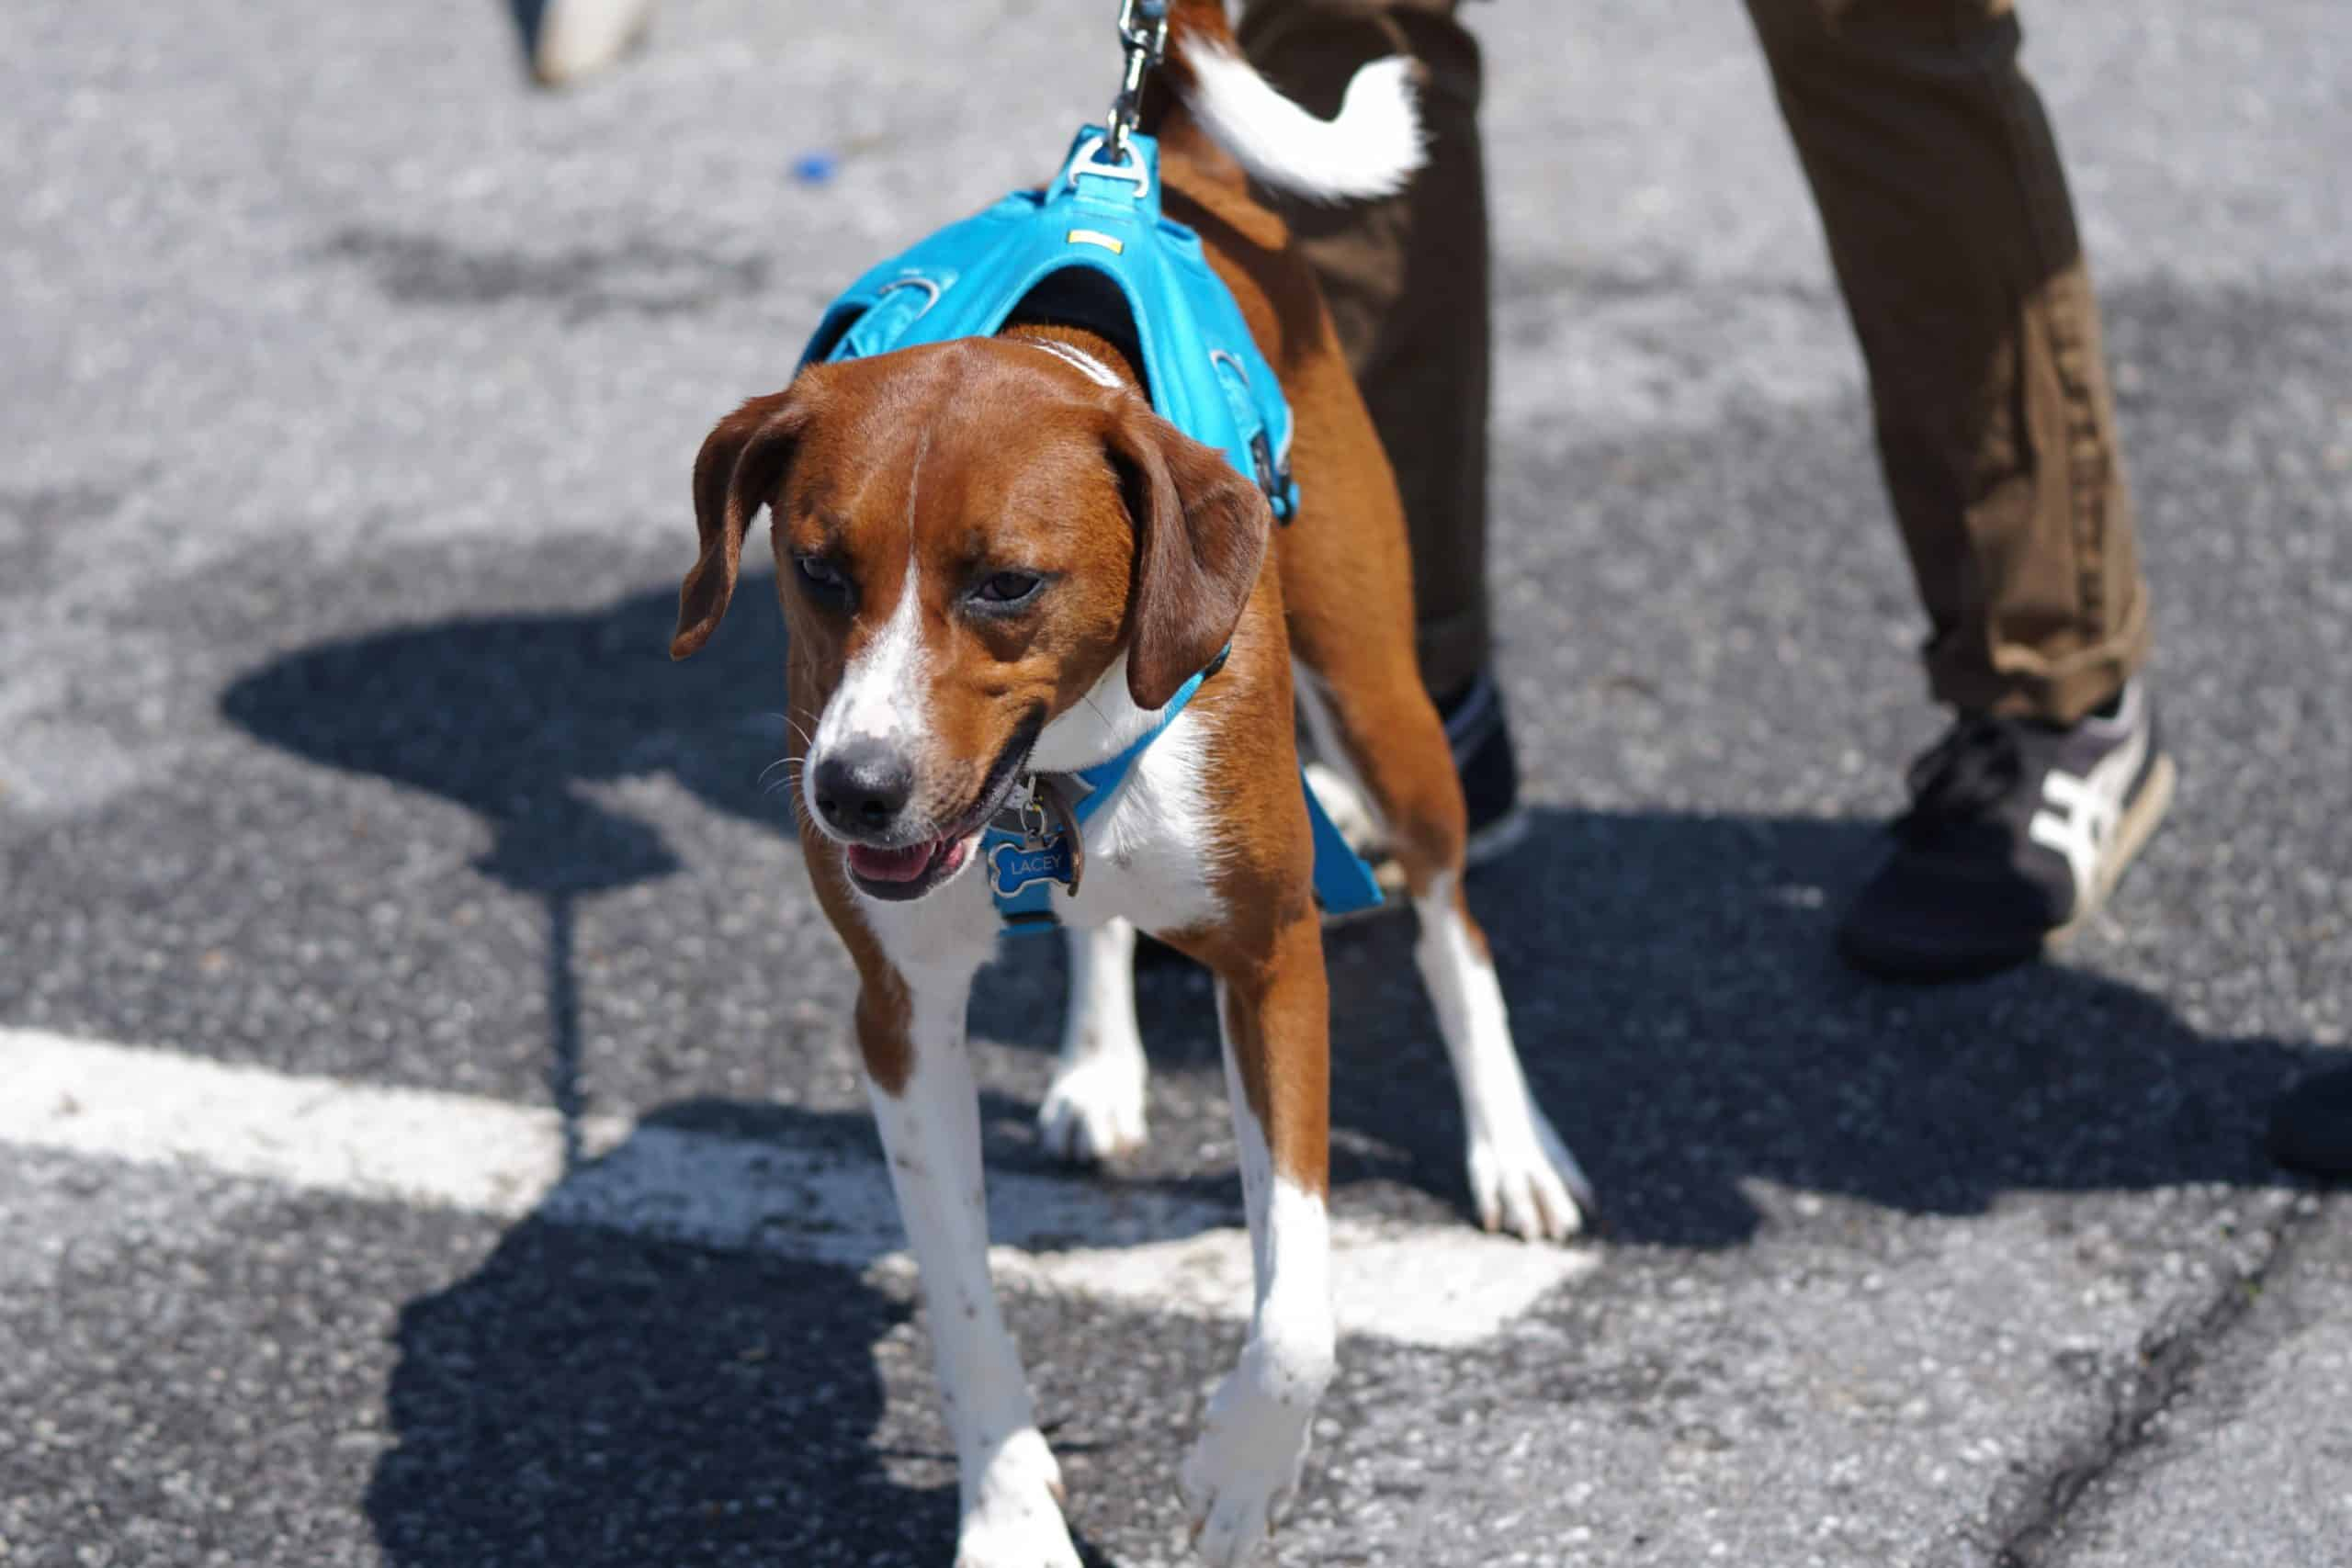 Dog with a blue back clip harness pulling on the leash.